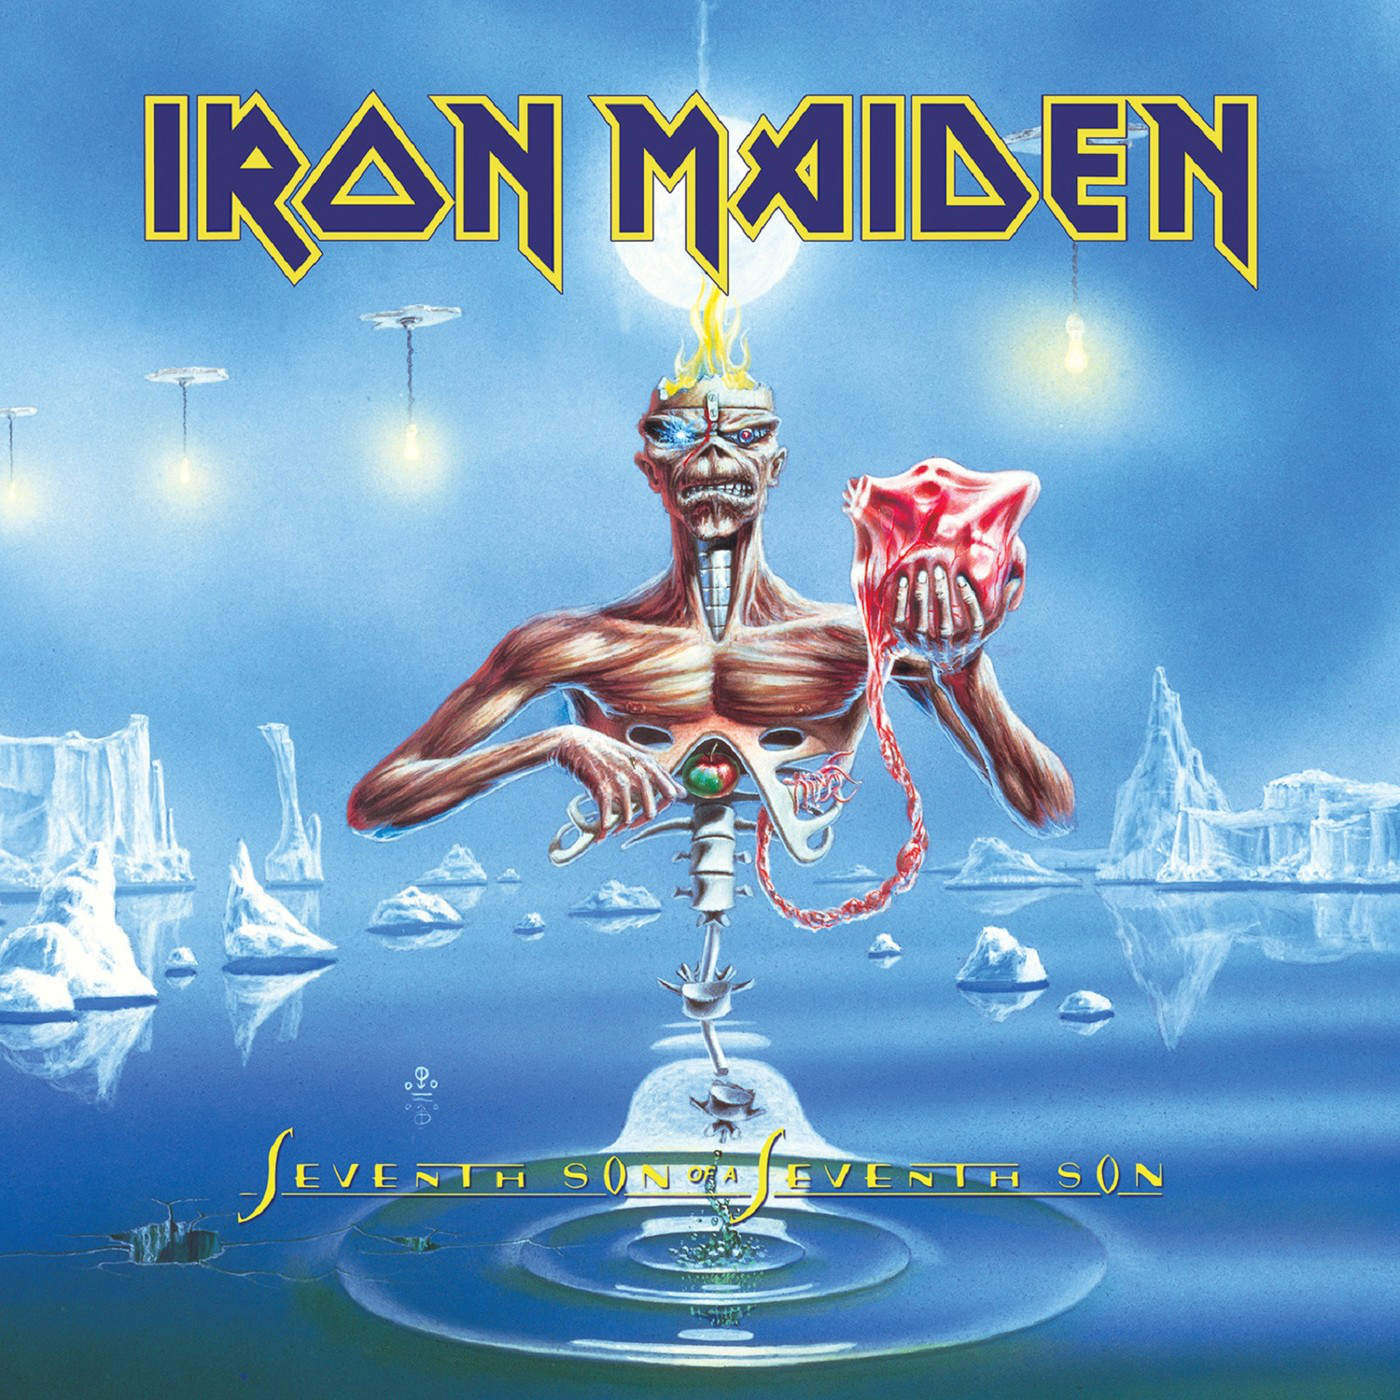 Iron maiden uk seventh son of a seventh son 1988 mastered for